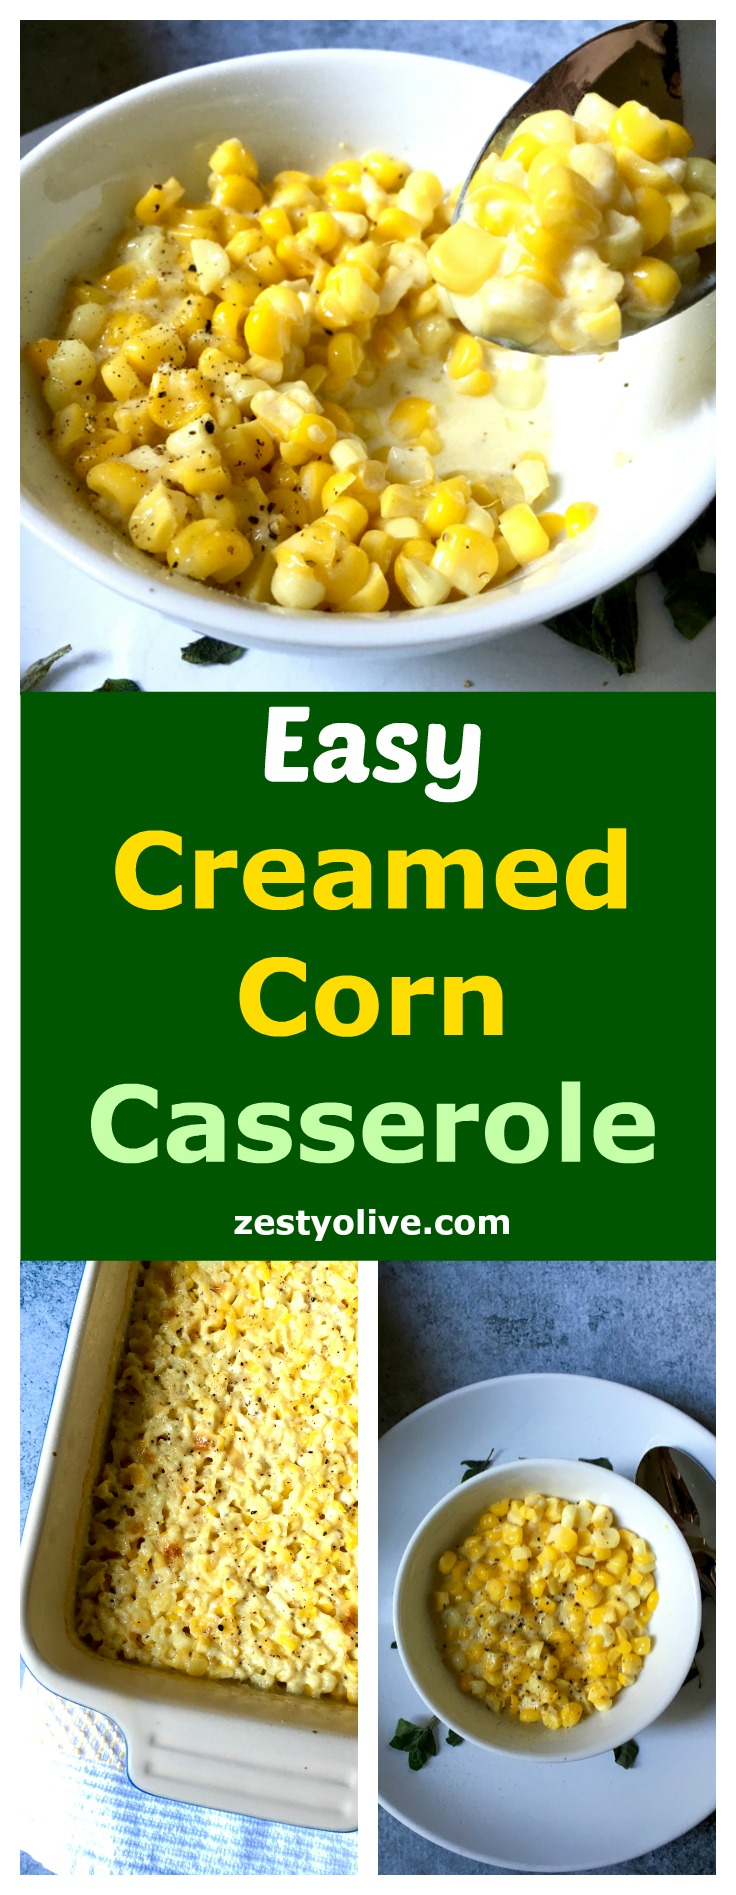 Easy Creamed Corn Casserole